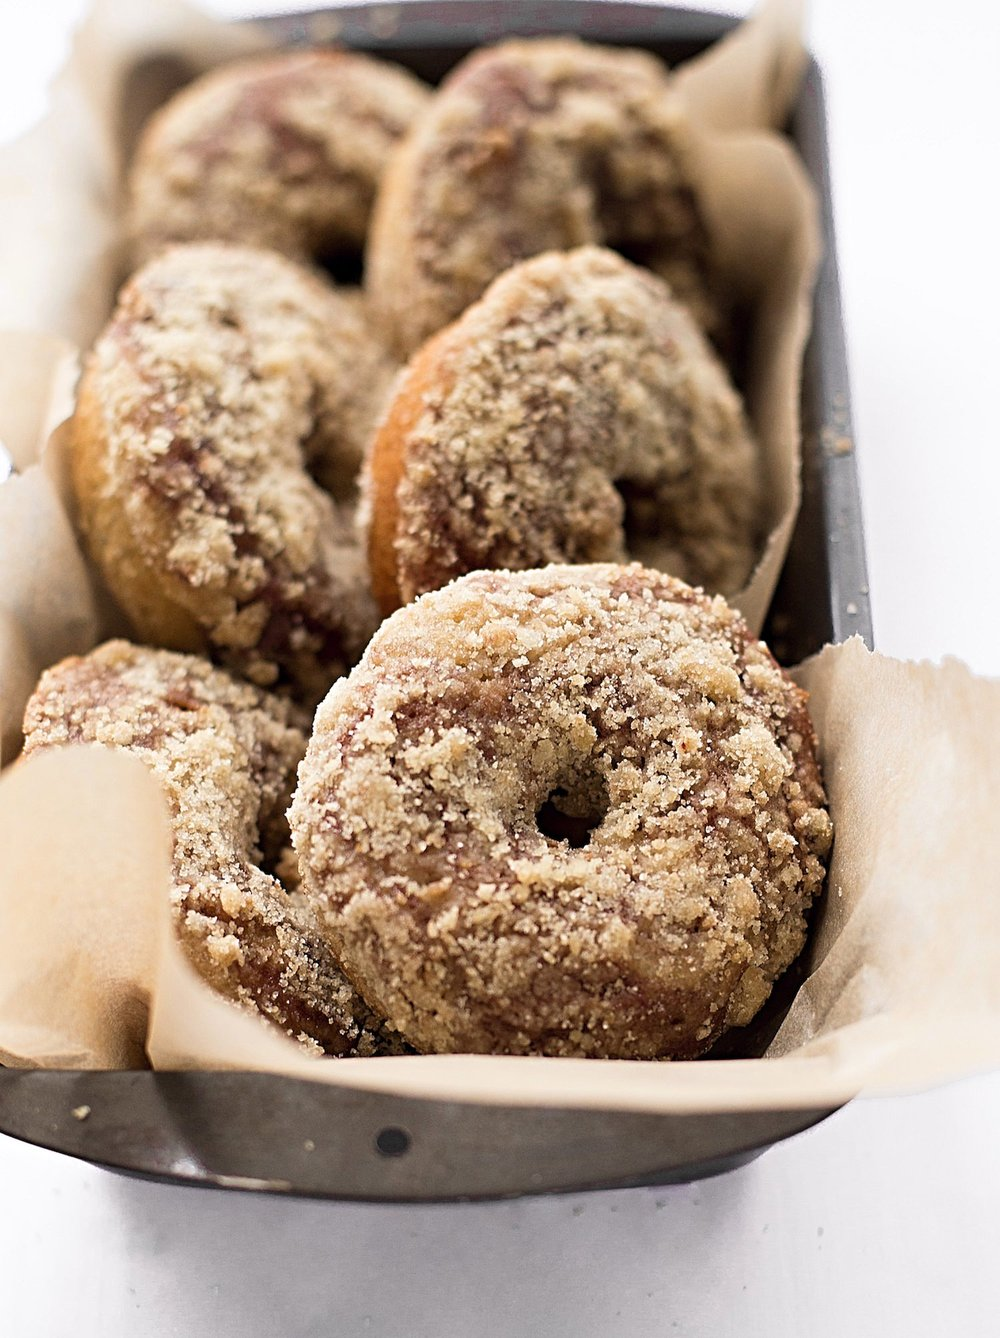 Baked Marble Crumb Donuts: soft, fluffy, baked chocolate and vanilla swirled donuts with a buttery crumb topping. Too good! | TrufflesandTrends.com